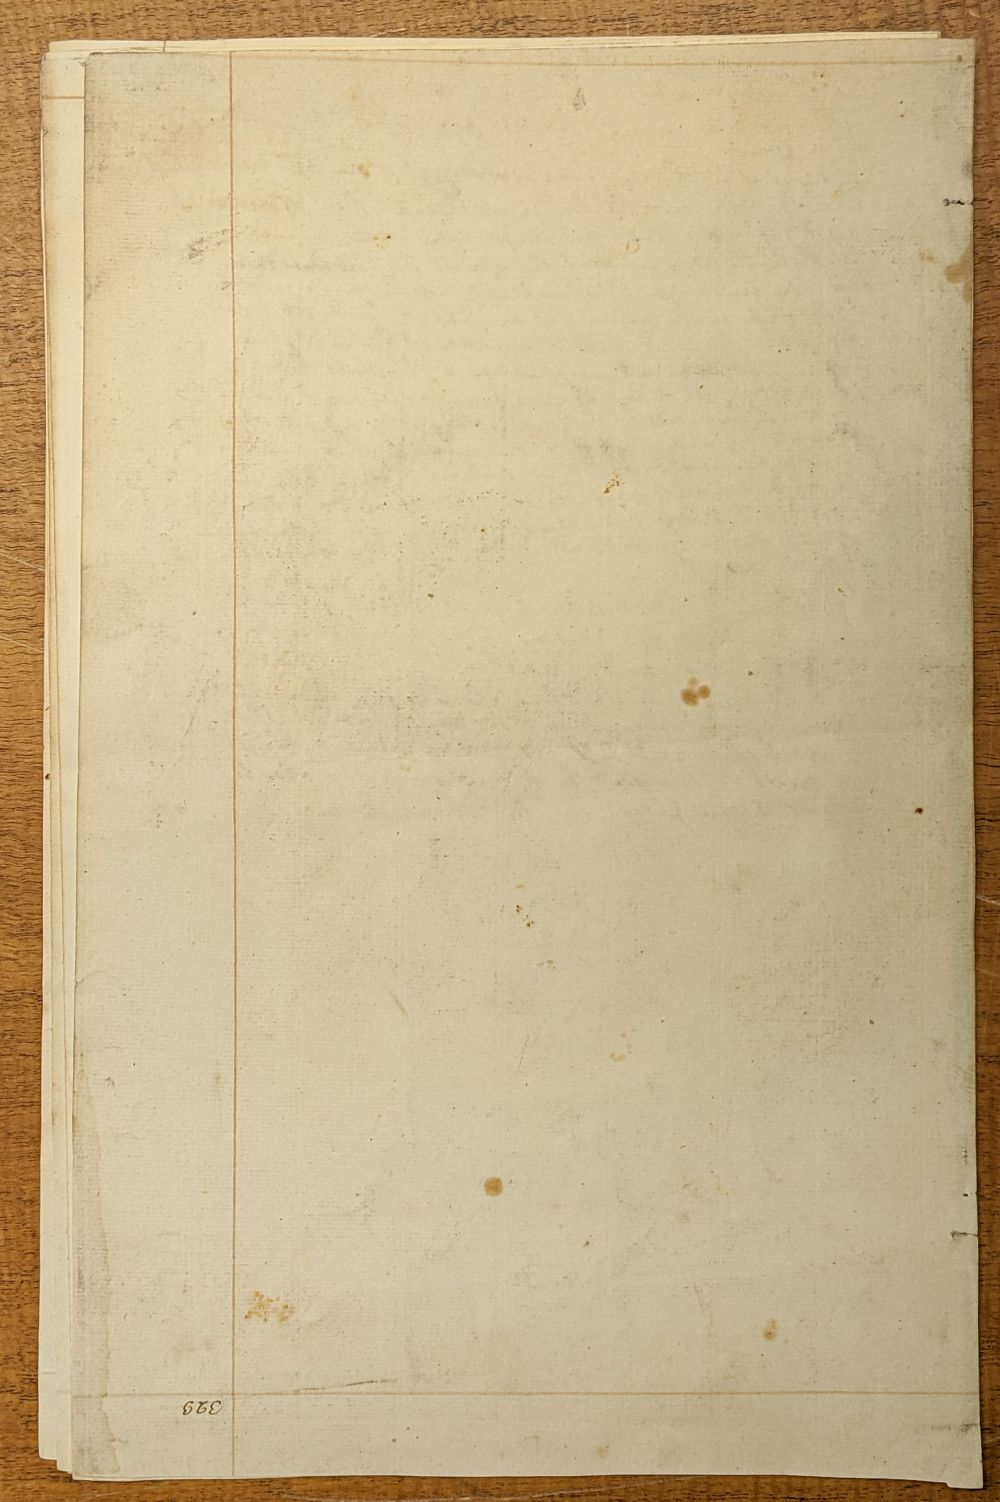 * West Indies. Manuscript application for funds and assistance... , mid 18th century - Image 6 of 6